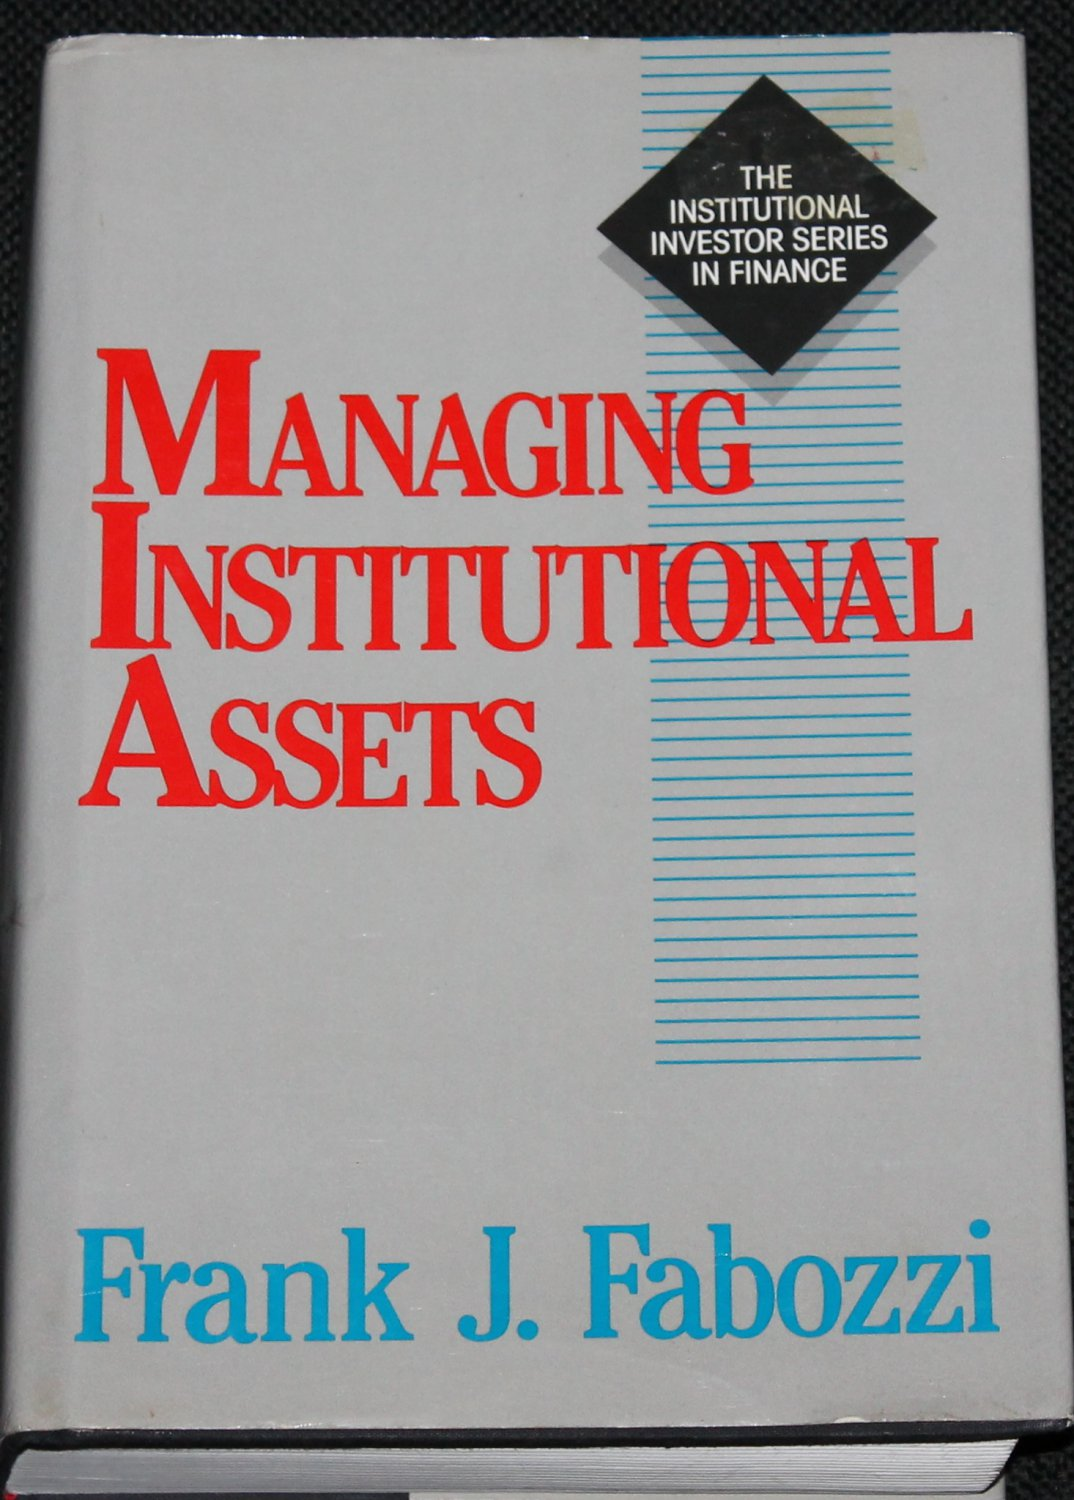 Managing Institutional Assets - business book by Frank J. Fabozzi hardcover